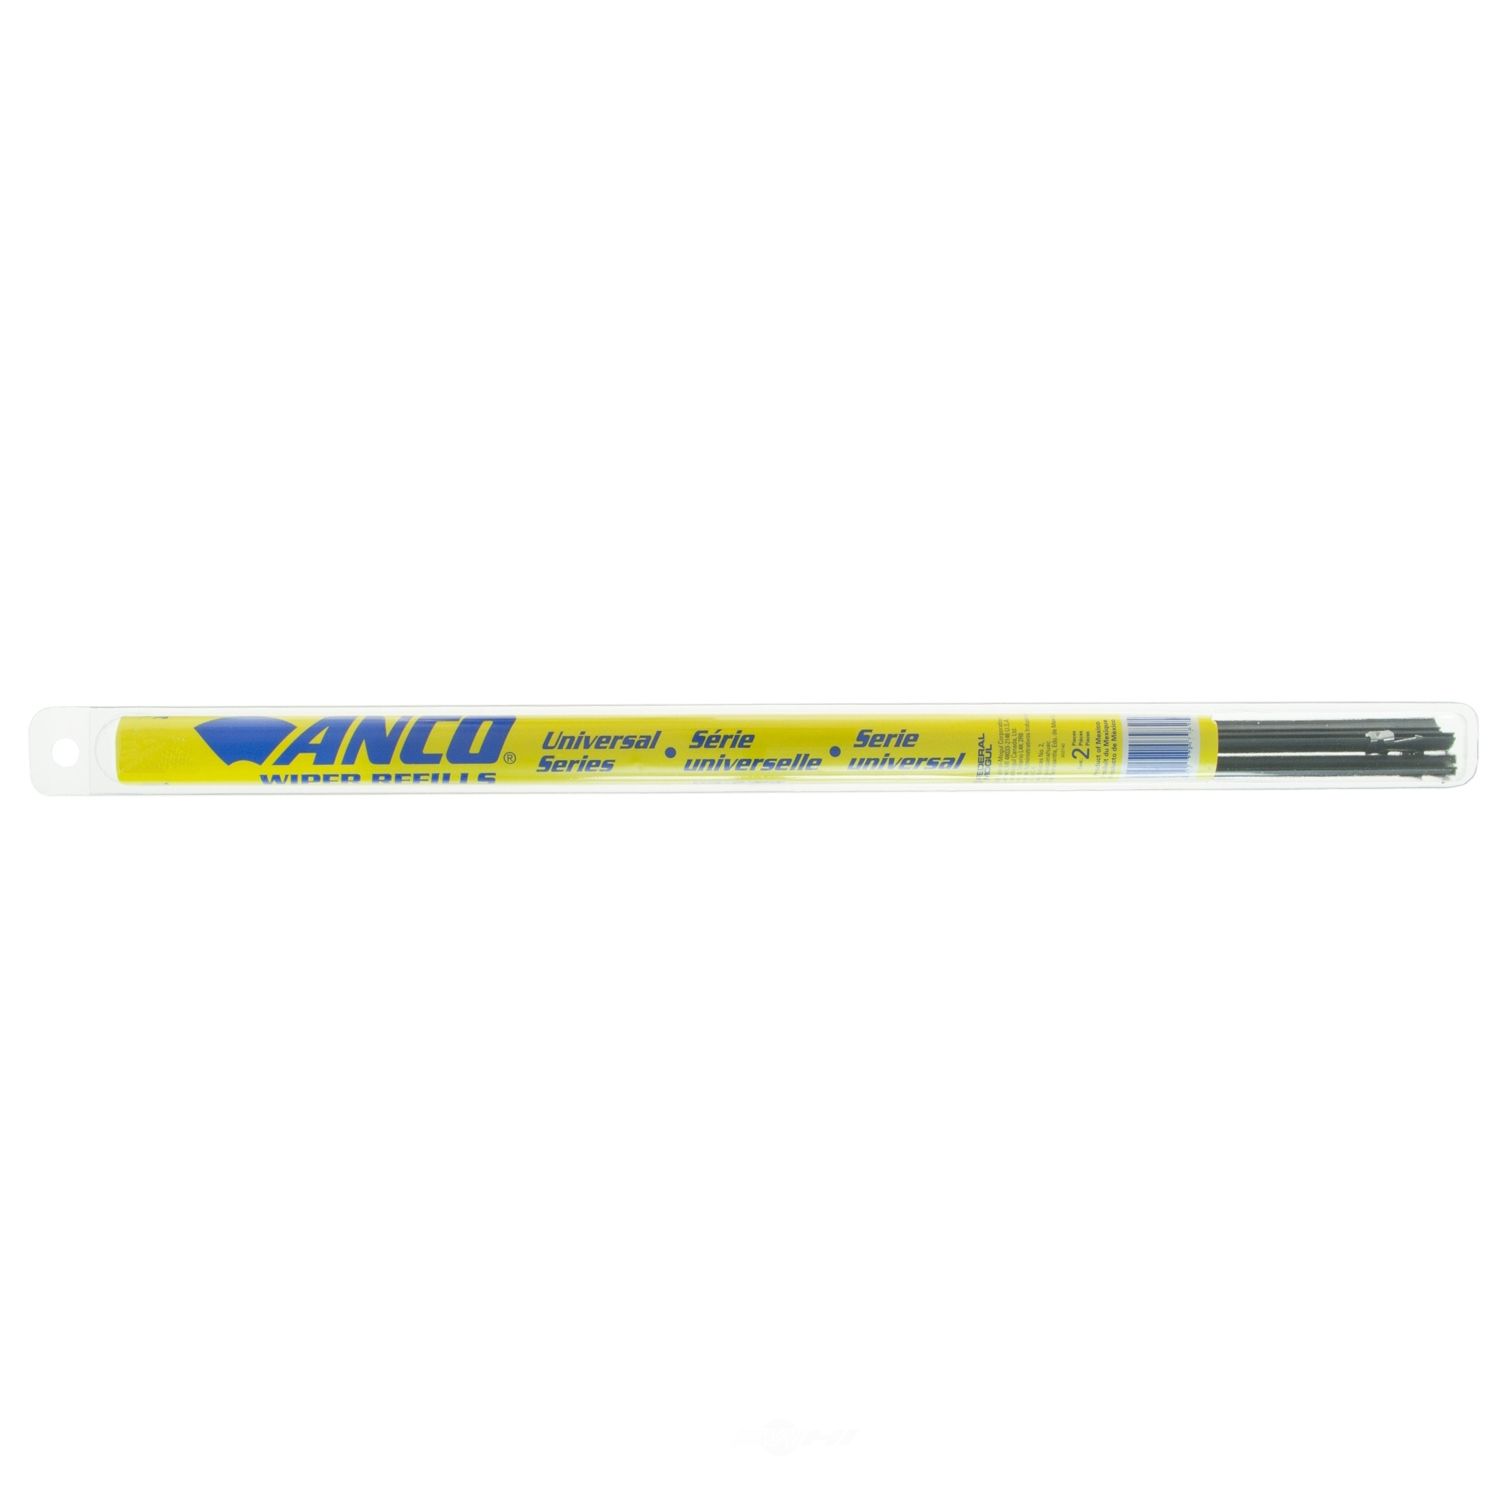 ANCO WIPER PRODUCTS - Universal Series Refills (Front Right) - ANC U-24R